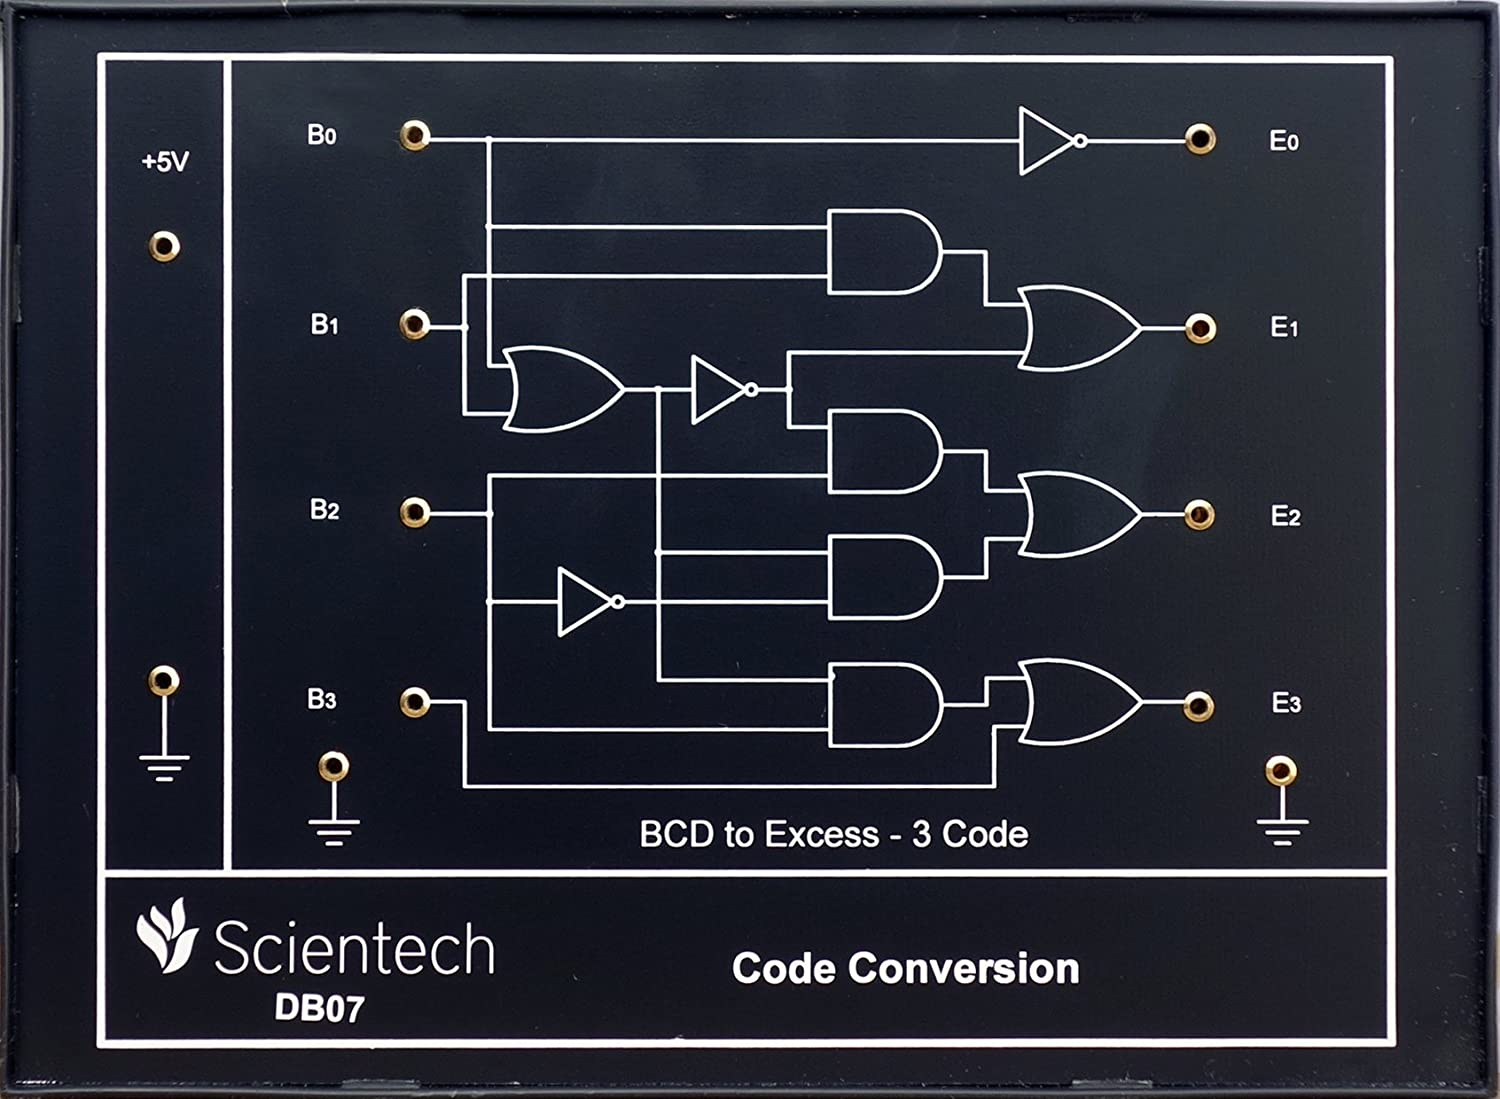 Db07 Code Conversion Bcd To Excess 3 Experiment Board And Schematic For Converting Trainer Kit With 1 Year Warranty